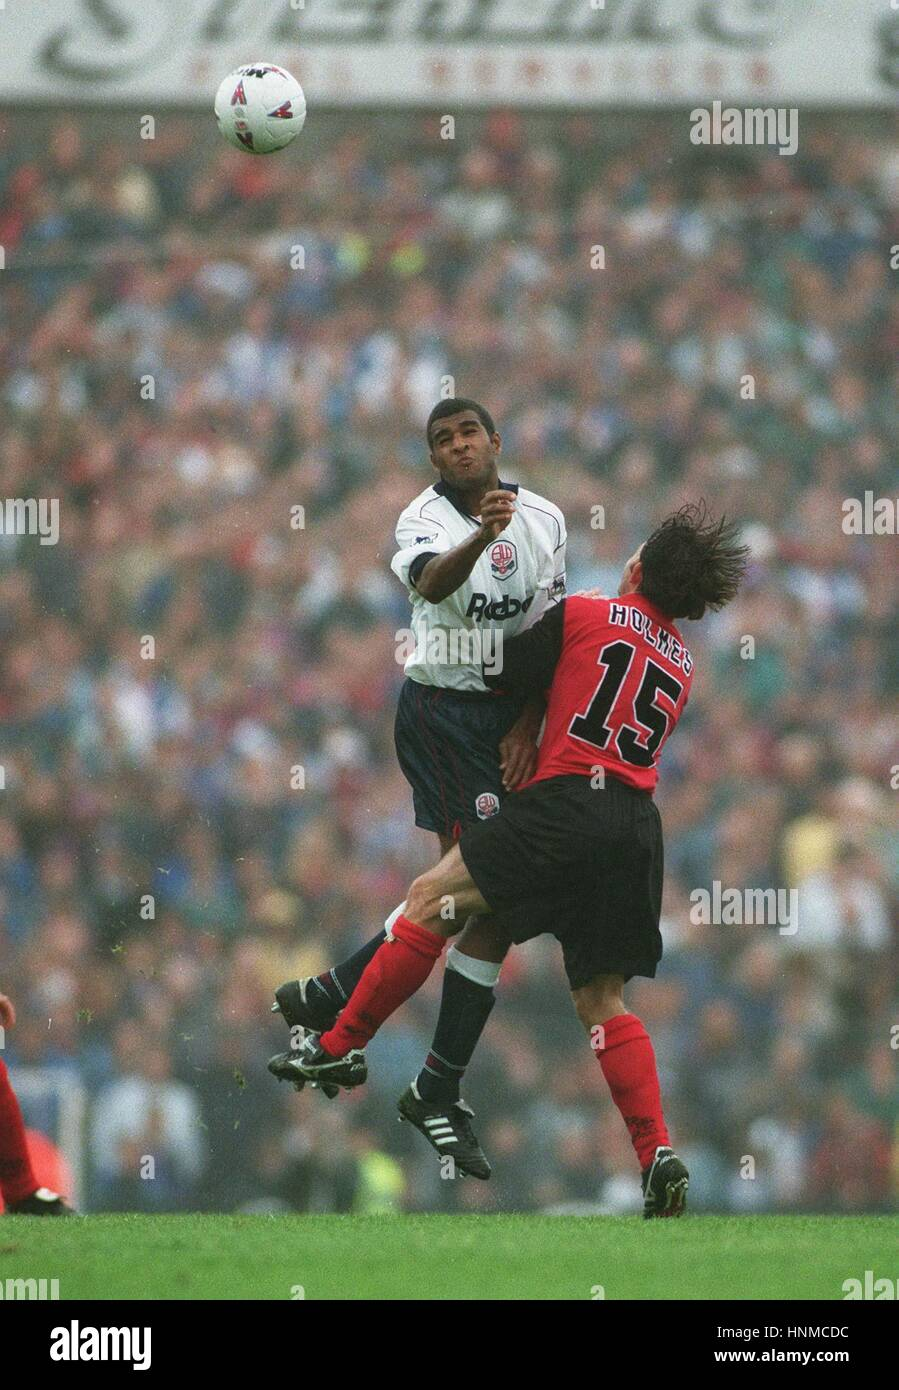 GOALSCORERS DE FREITAS AND HOL MES CHALLENGE FOR THE BALL 26 August 1995 - Stock Image